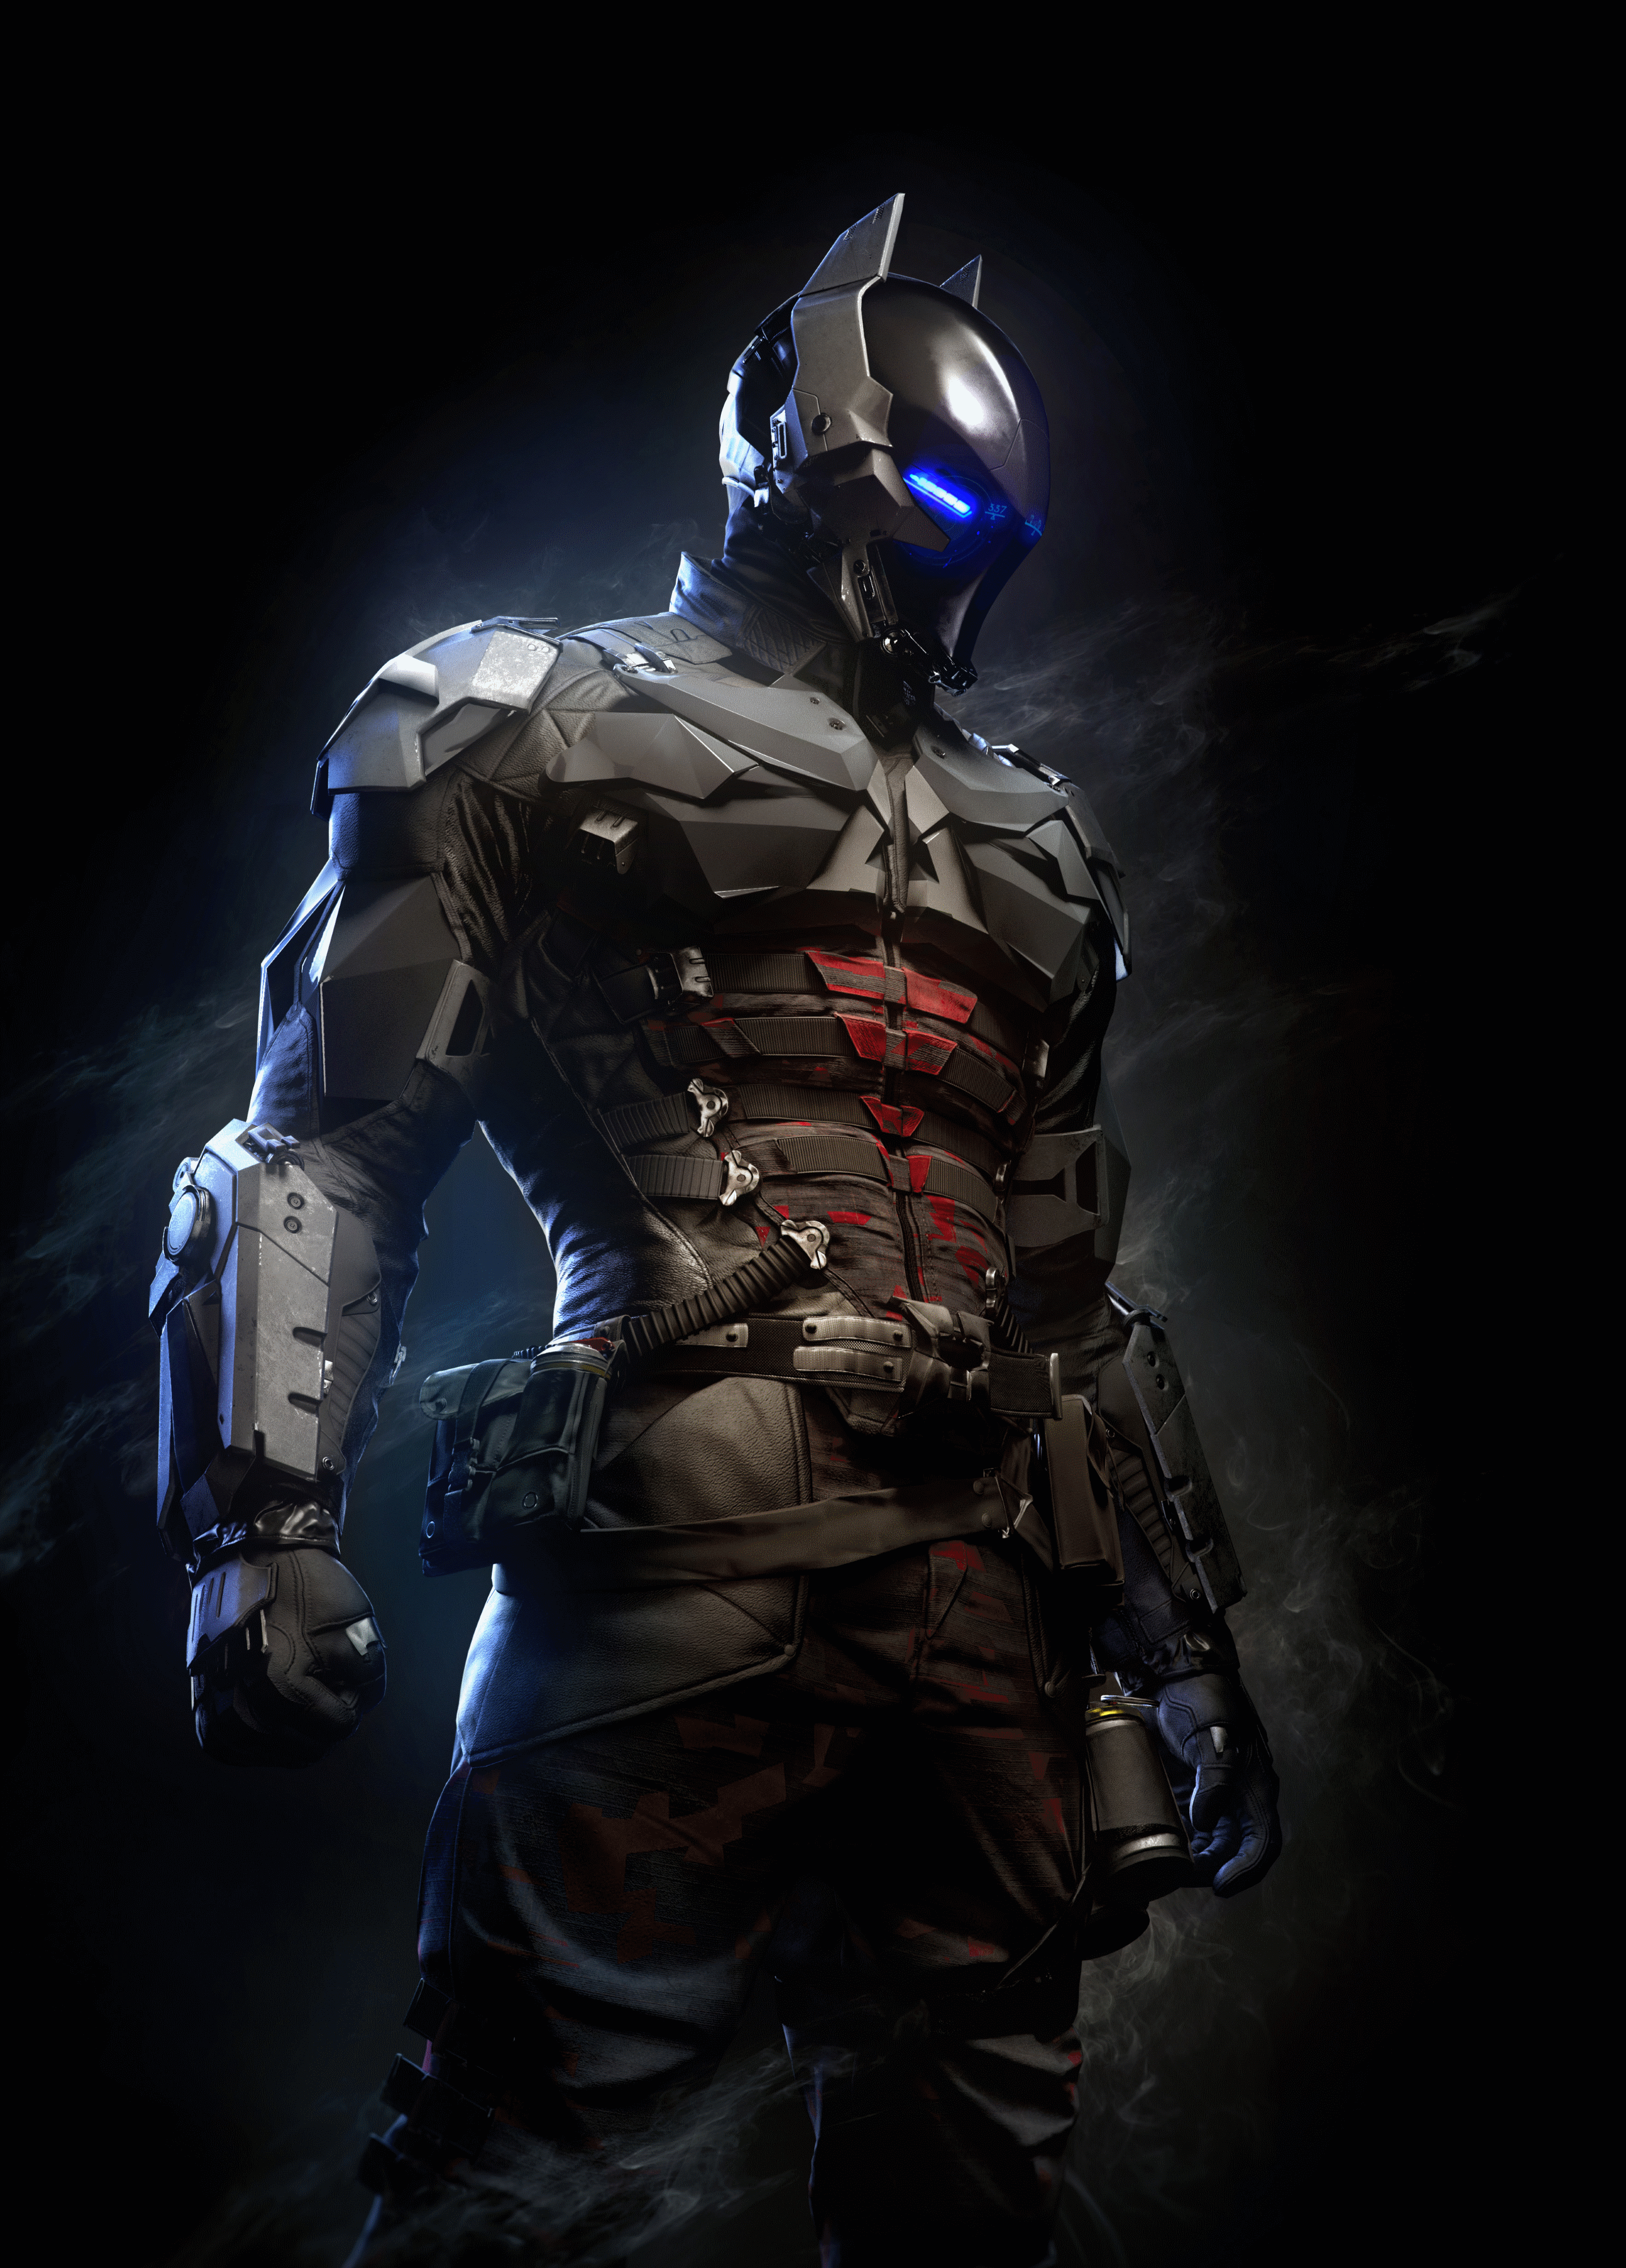 http://vignette2.wikia.nocookie.net/arkhamcity/images/f/fb/ArkhamKnight.png/revision/latest?cb=20150711033721